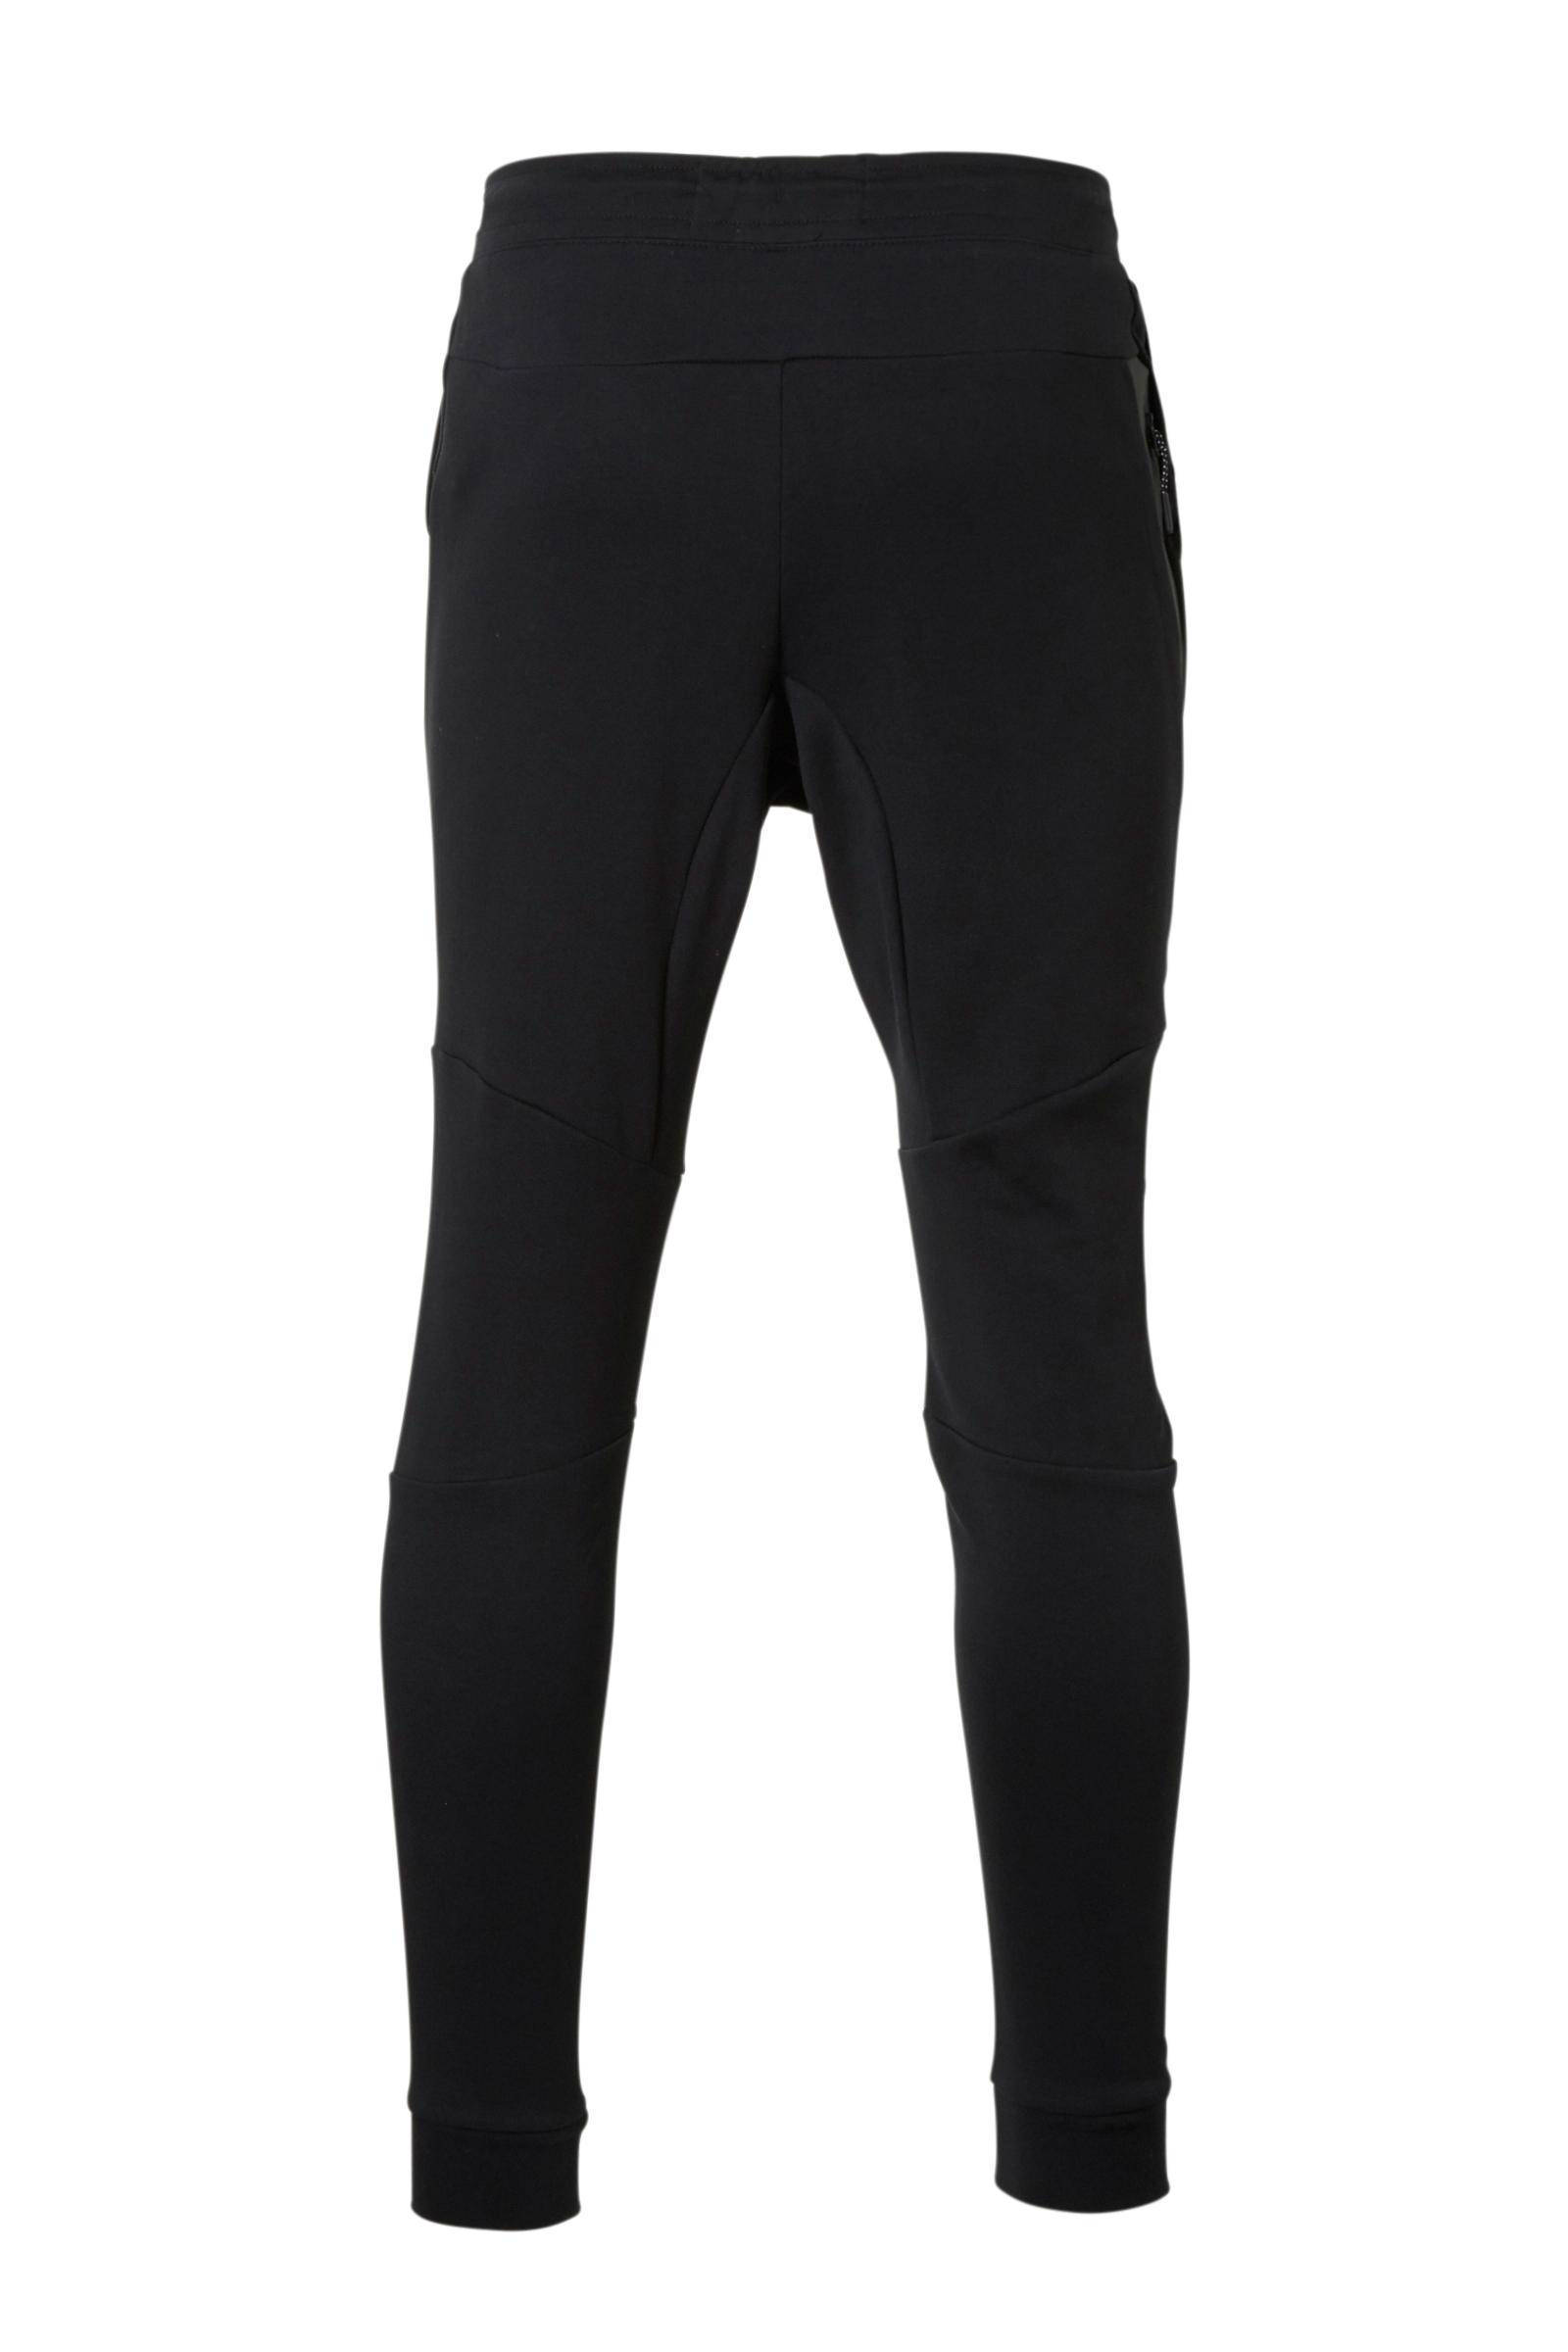 Strakke Joggingbroek Dames.Nike Tech Fleece Joggingbroek Wehkamp